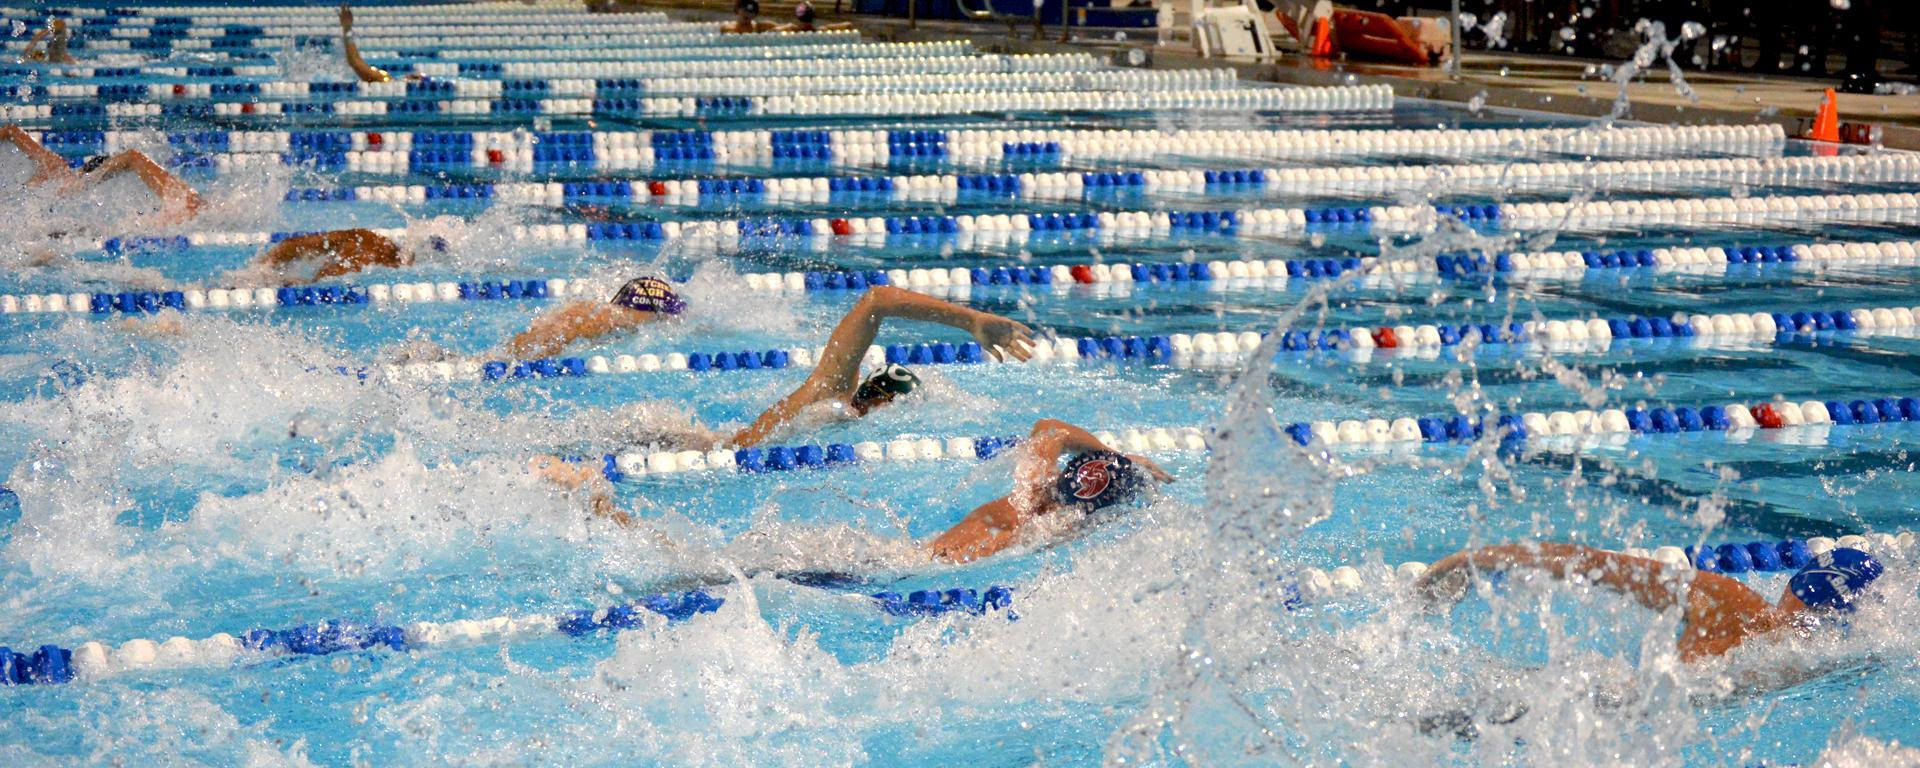 Competitive swimmers in a pool